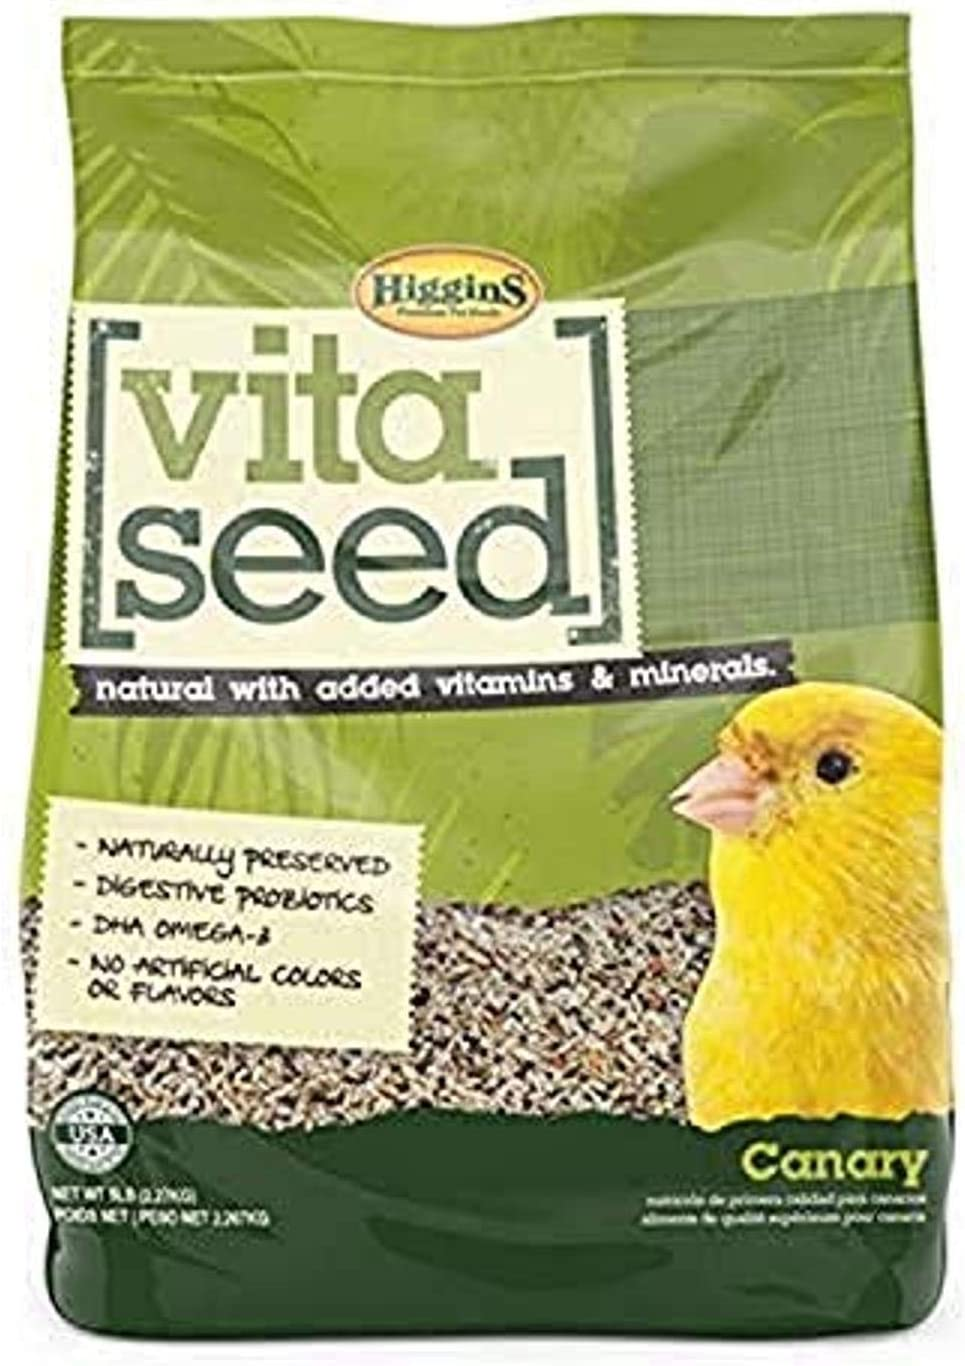 Higgins 466163 Vita Seed Natural Canary 5 Lb (1 Pack), One Size